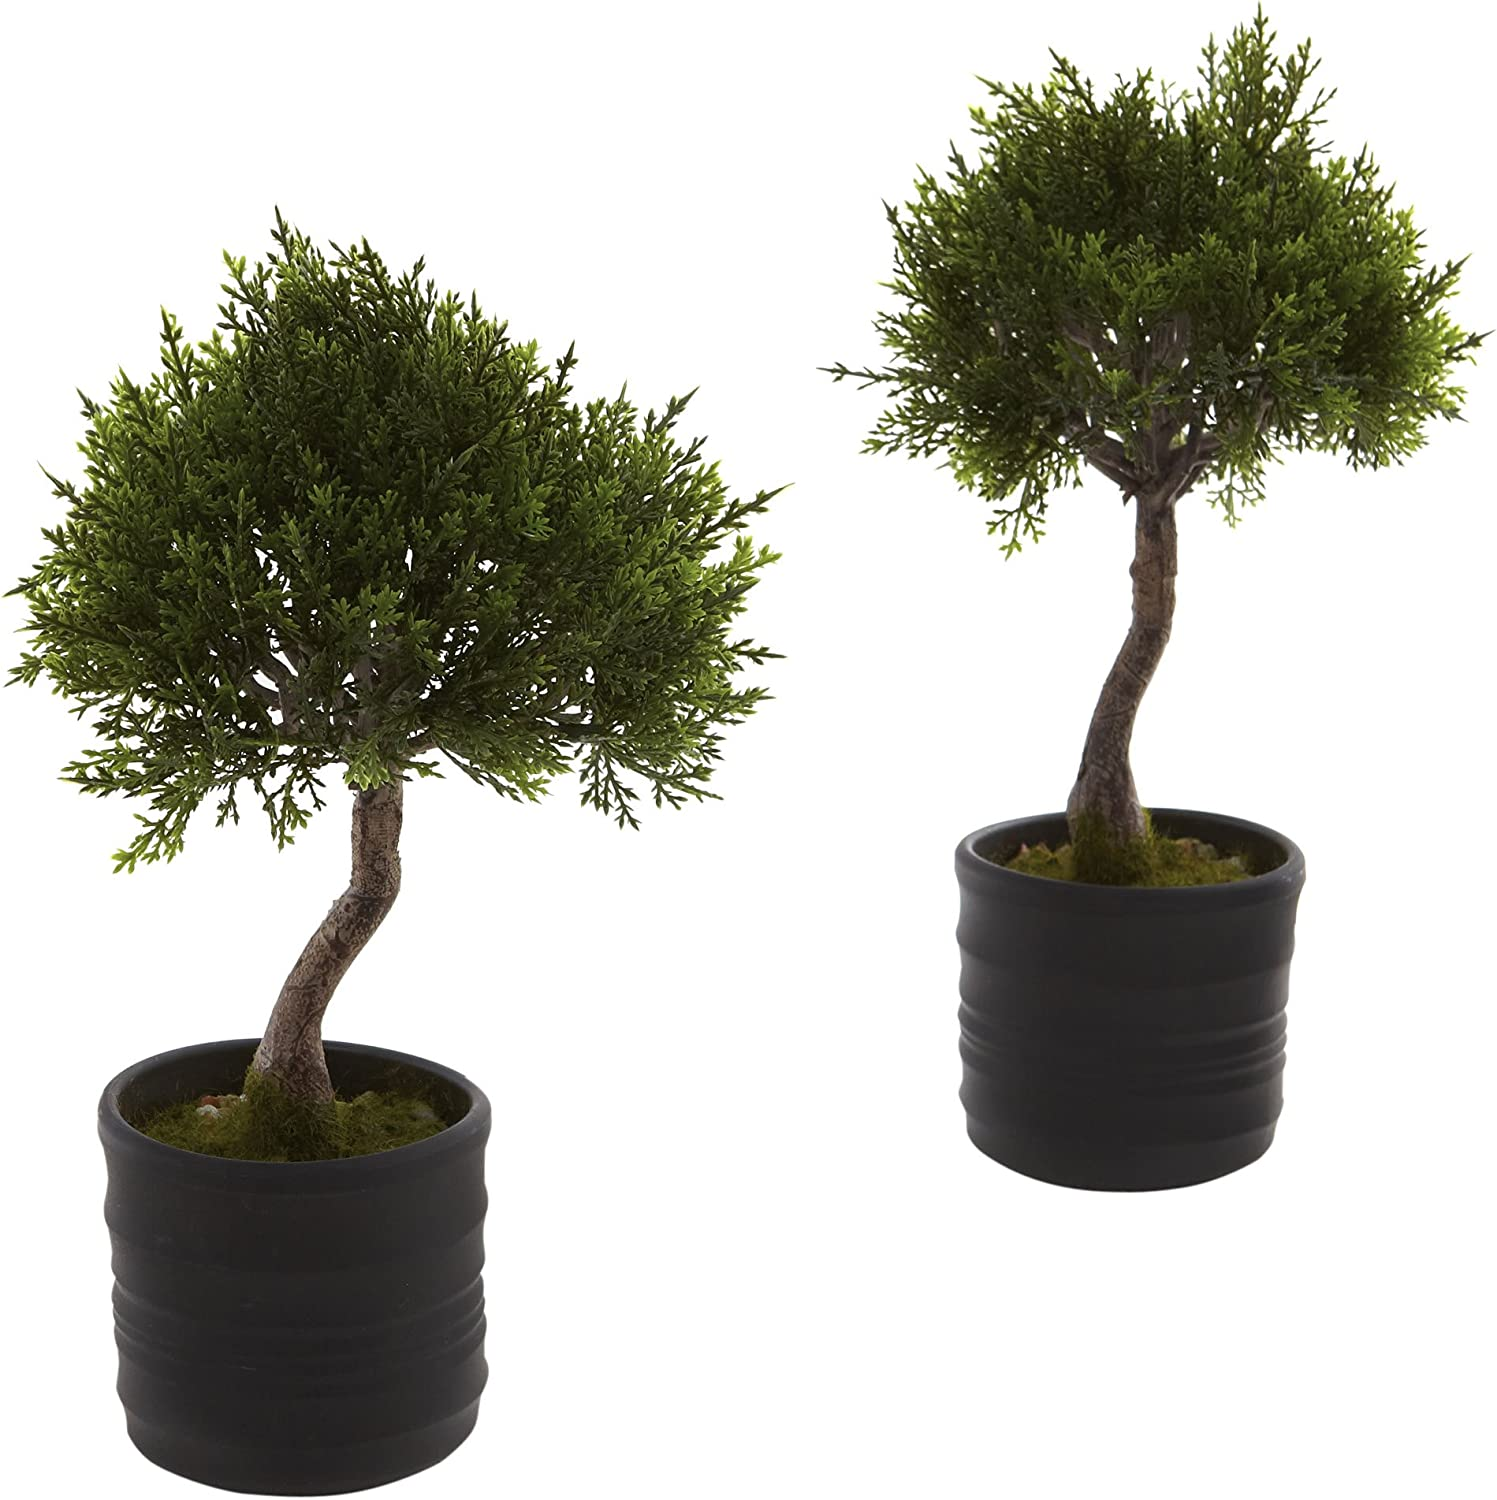 Amazon Com Nearly Natural 4965 S2 Cedar Bonsai Artificial Tree With Planter Green Set Of 2 6 75 X 6 75 X 22 5 Home Kitchen